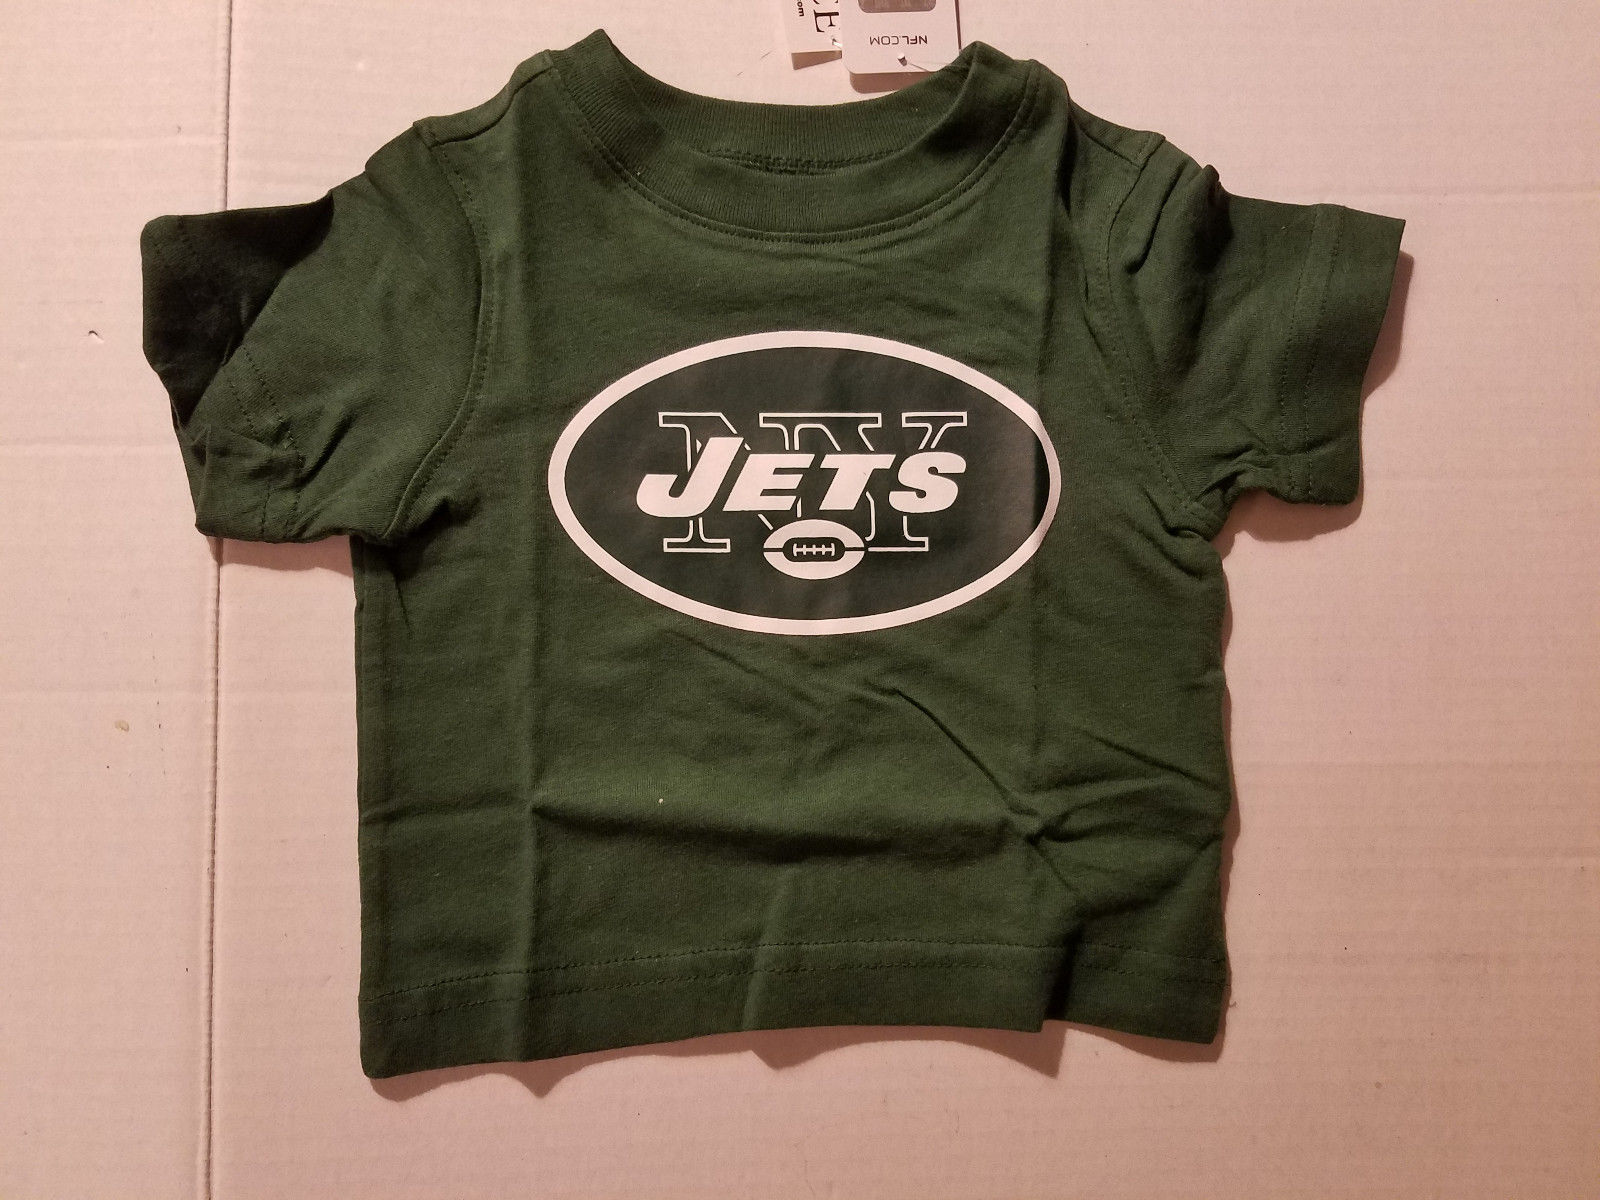 NFL TEAM  New York Jets Toddler Sizes 6-9 M 9-12M  12-18M T-Shirt NWT